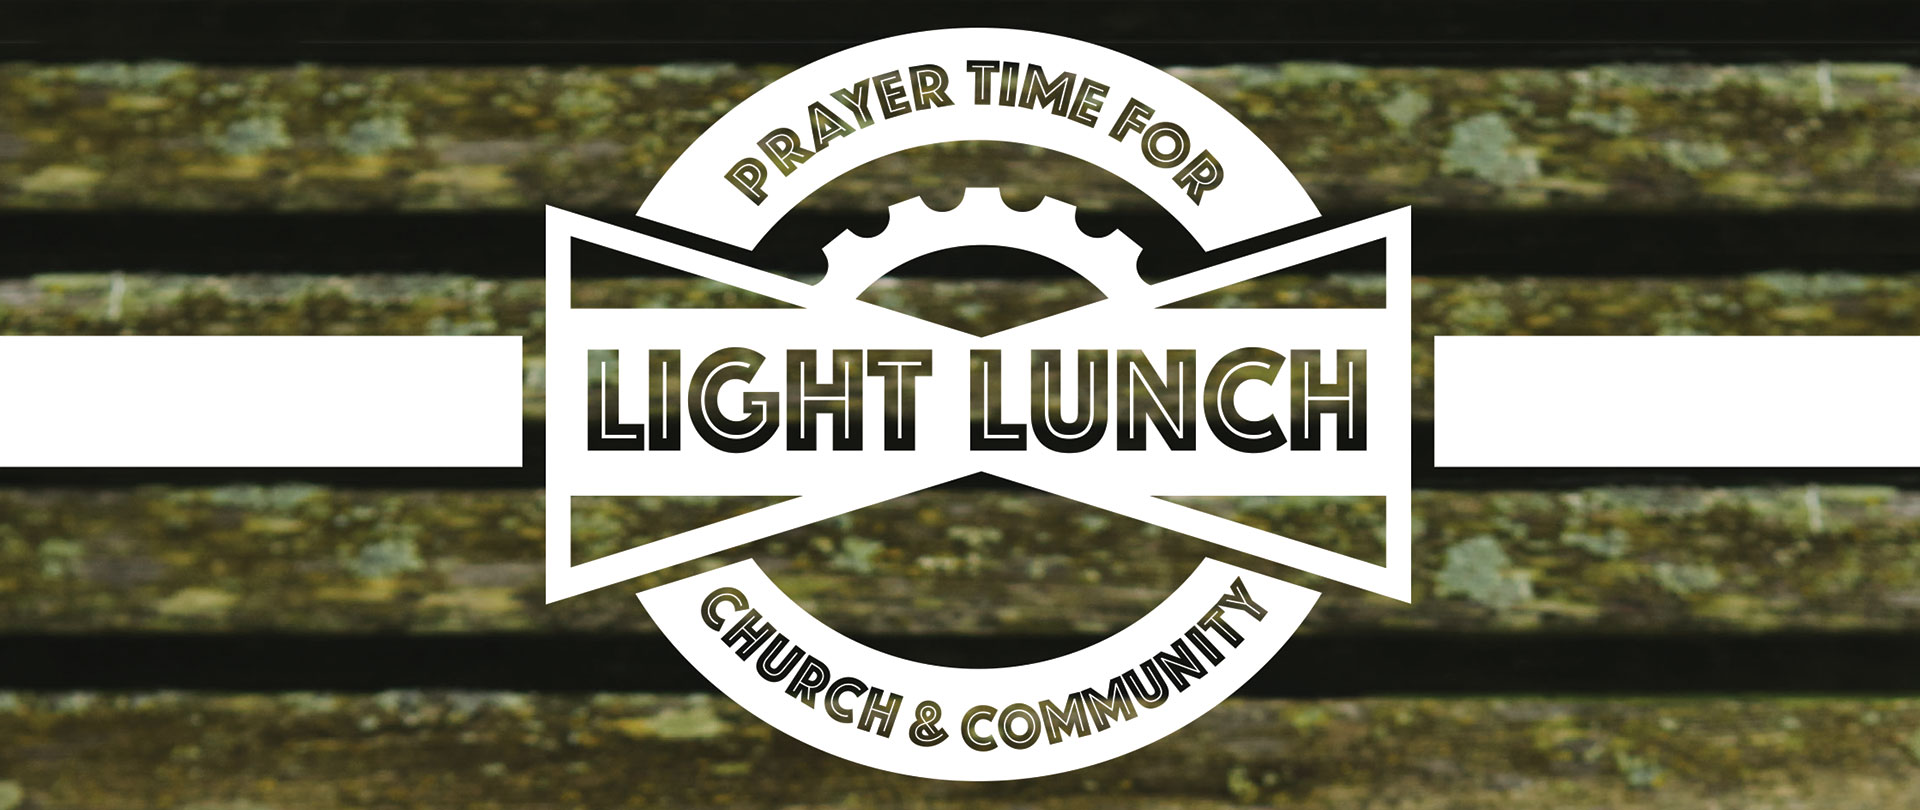 Light Lunch